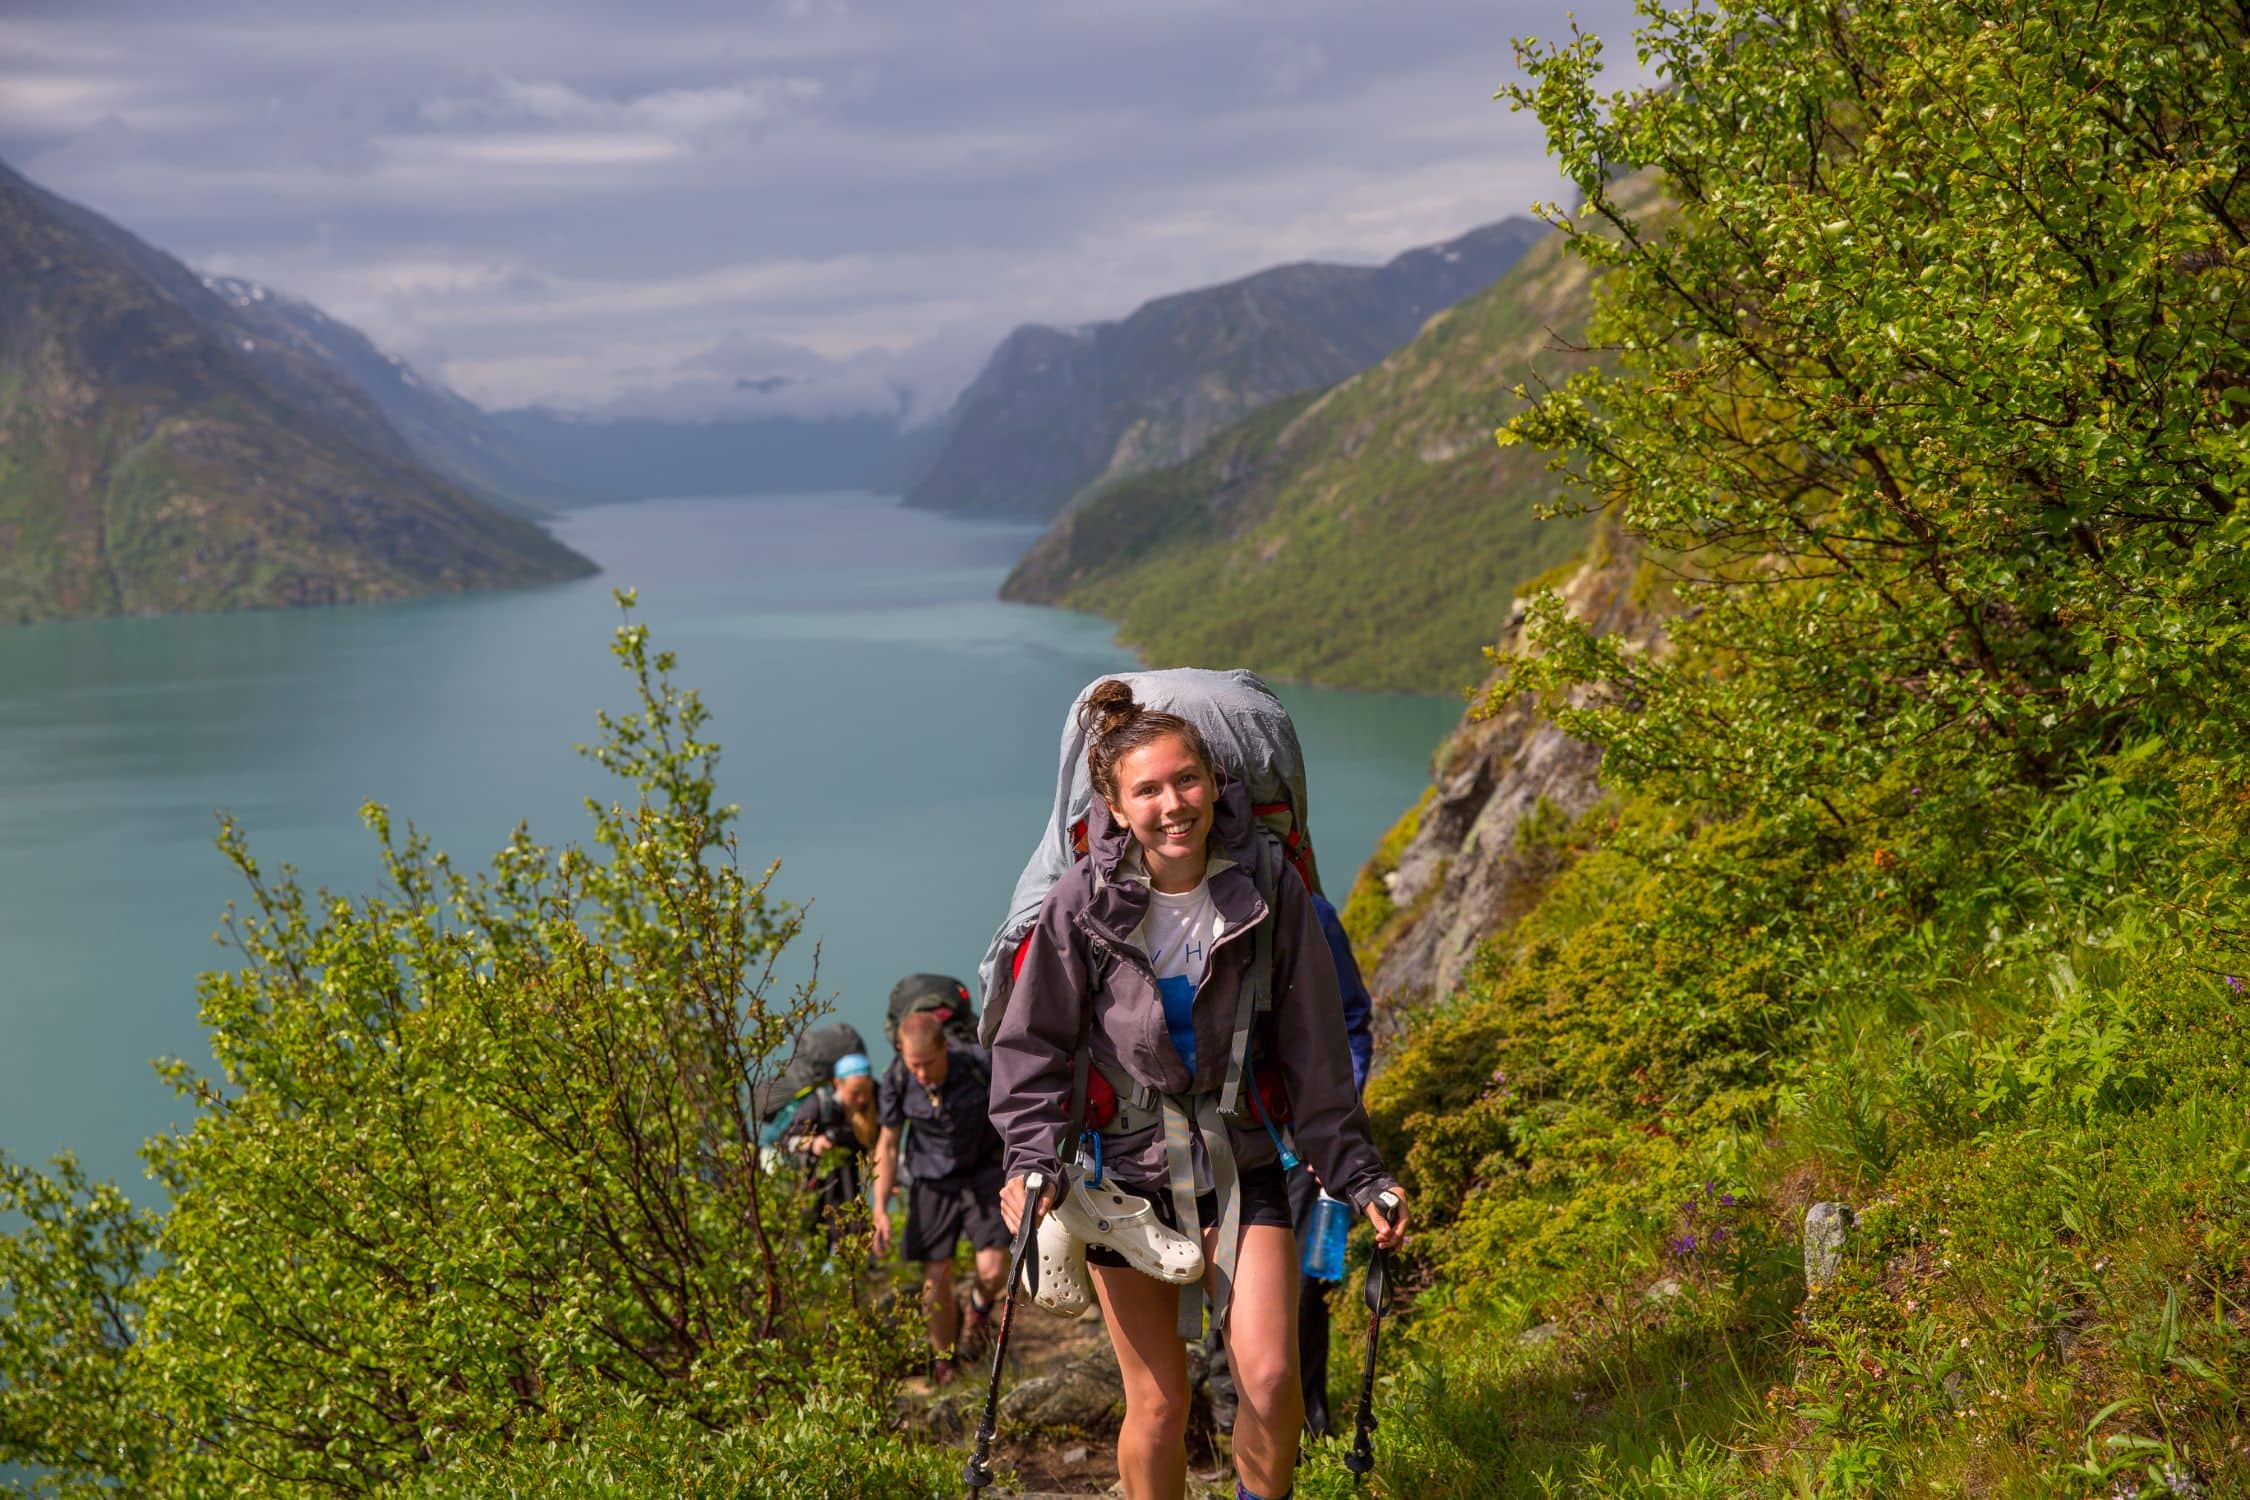 Campers smile in single file while on a hiking trip in Norway this summer